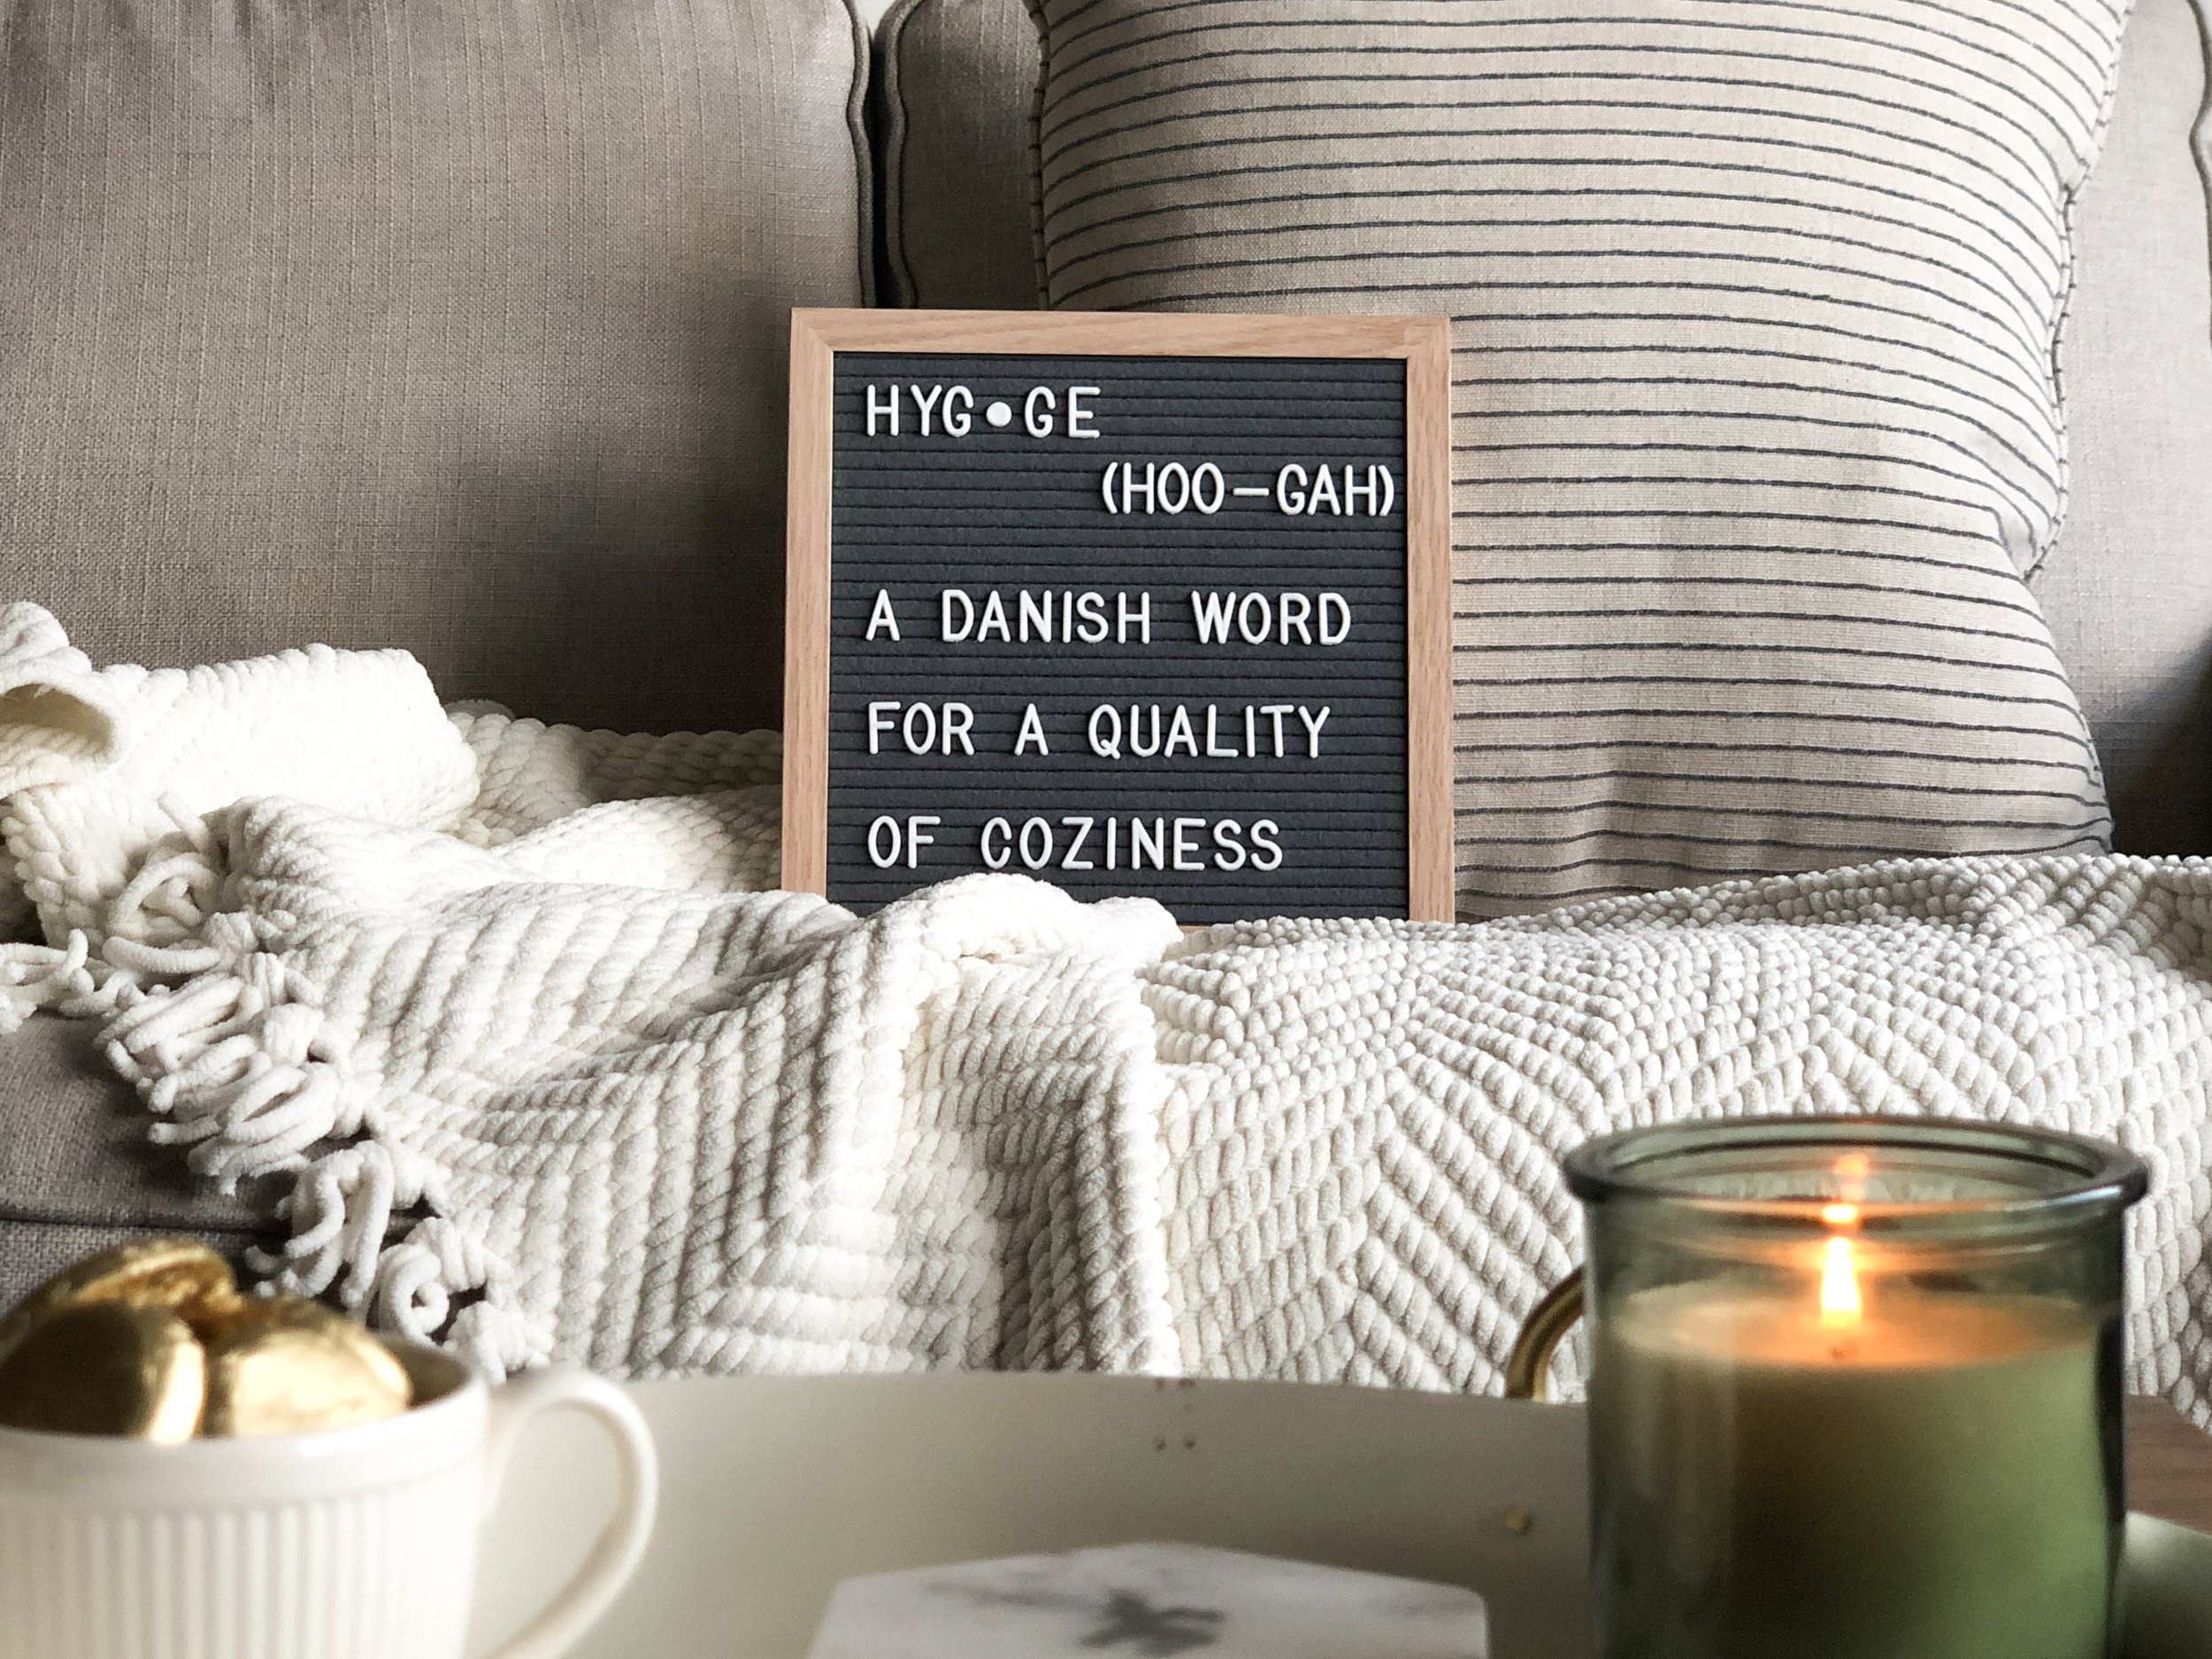 hyg·ge - /ˈh(y)o͞oɡə,ˈho͝oɡə/ (pronounced hoo-gah)nouna Danish word for a quality of cosiness (= feeling warm, comfortable, and safe) that comes from doing simple things such as lighting candles, baking, or spending time at home with your family.